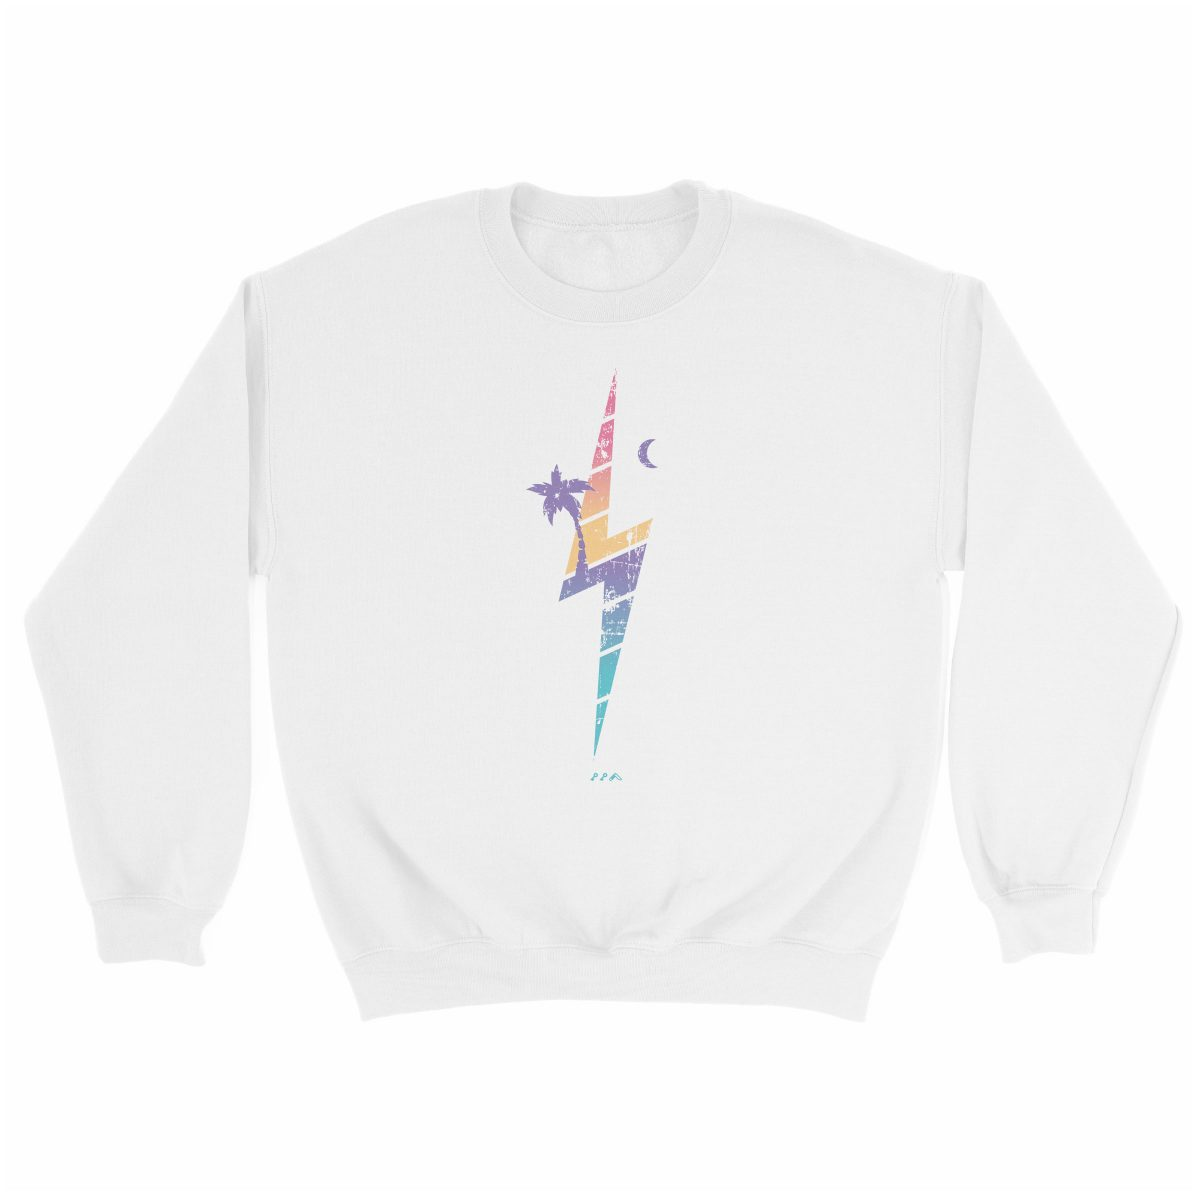 TROPIC THUNDER music festival soft beach sweatshirt in white at kikicutt.com